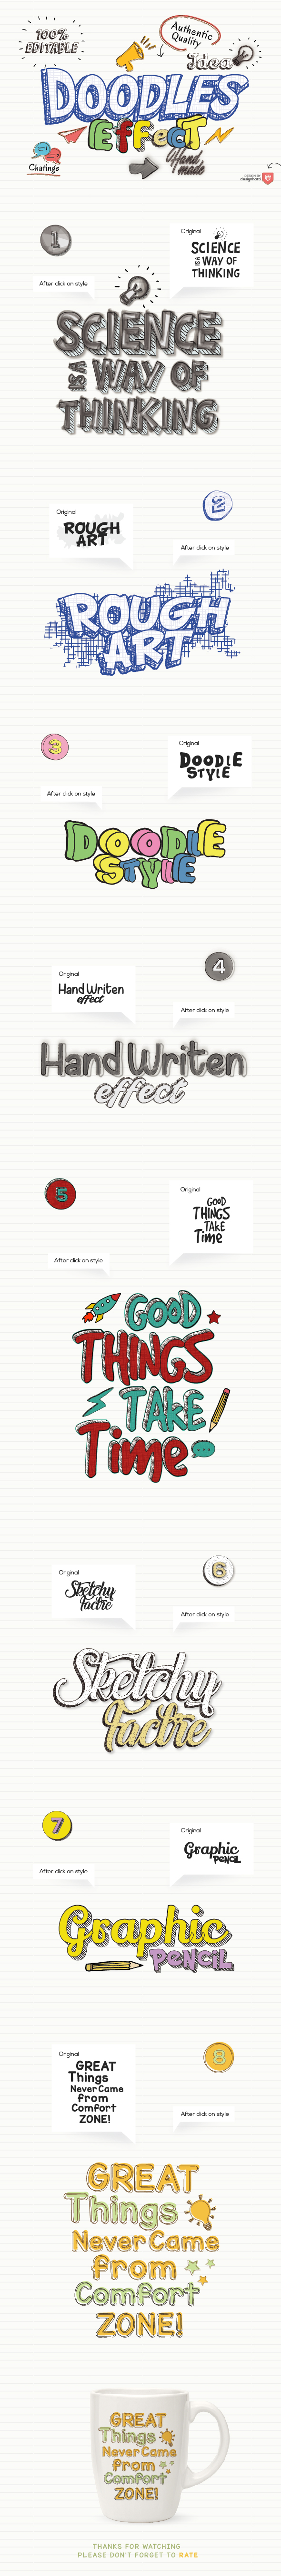 GraphicRiver Doodles Text Effect 20947029